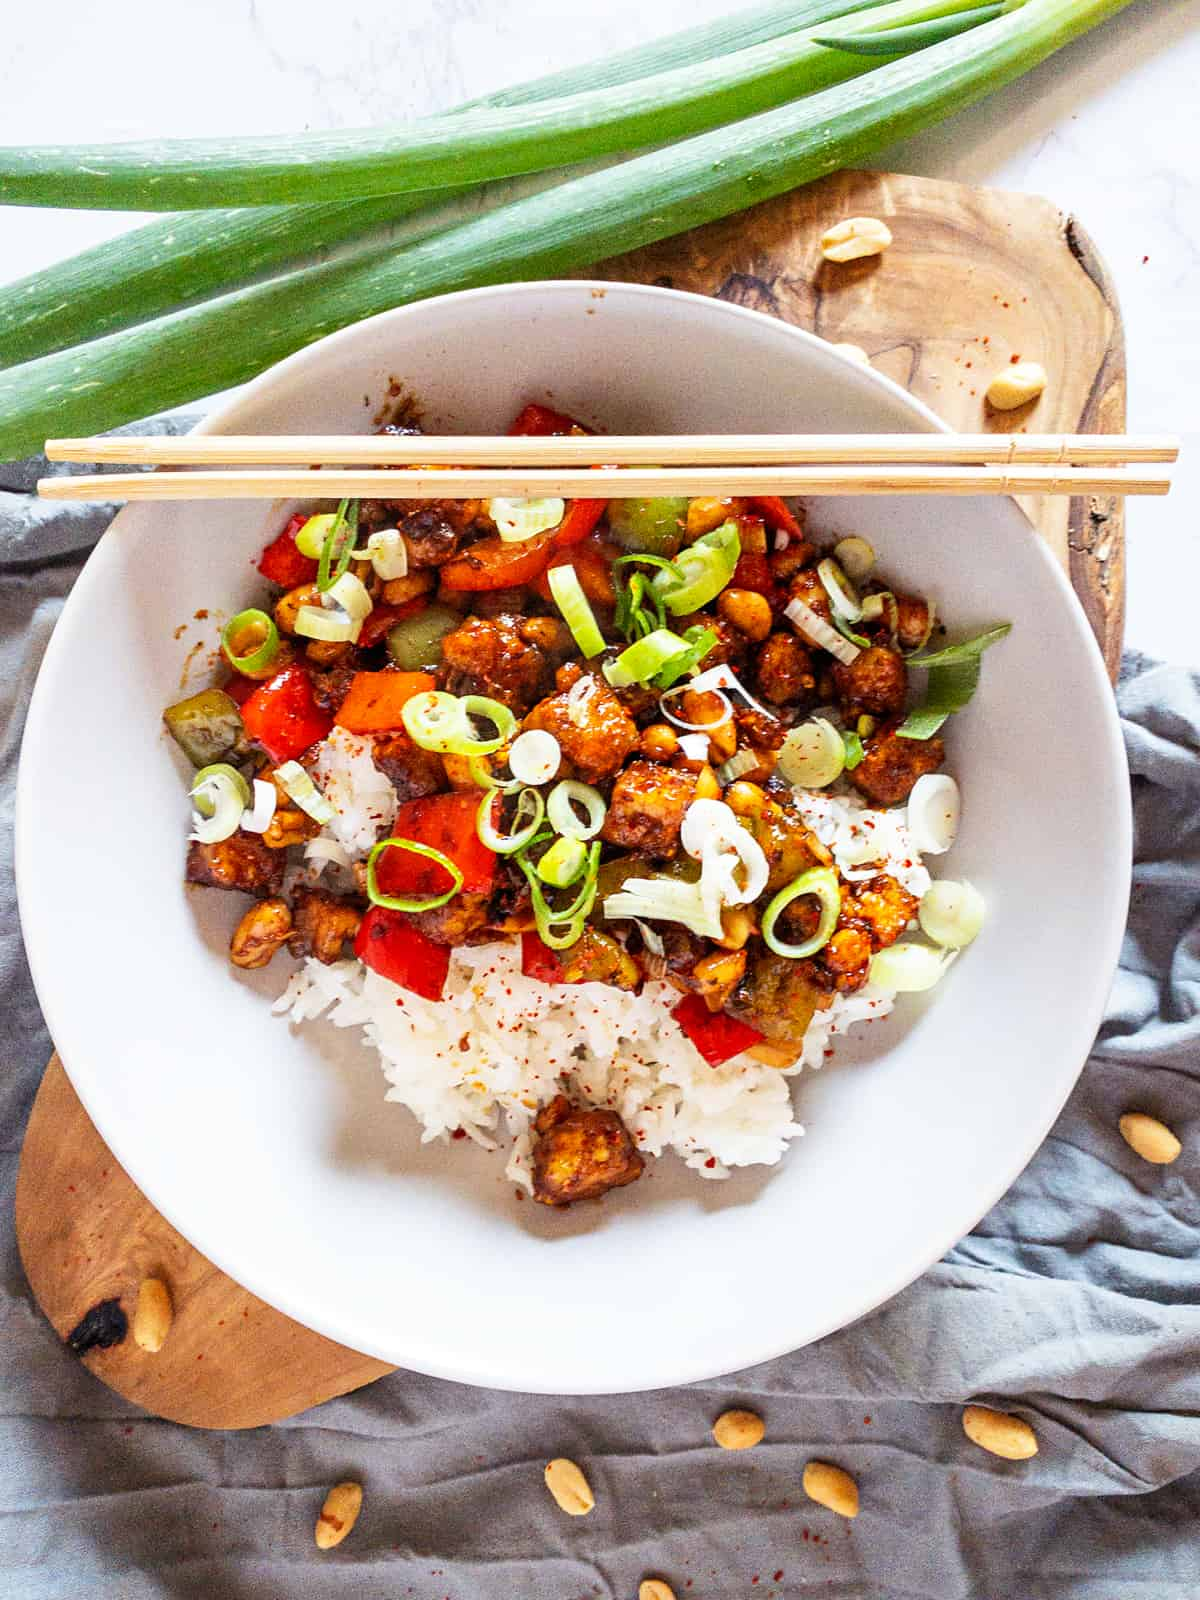 Kung Pao Tofu with white rice in a white bowl with green onions and peanuts on the side